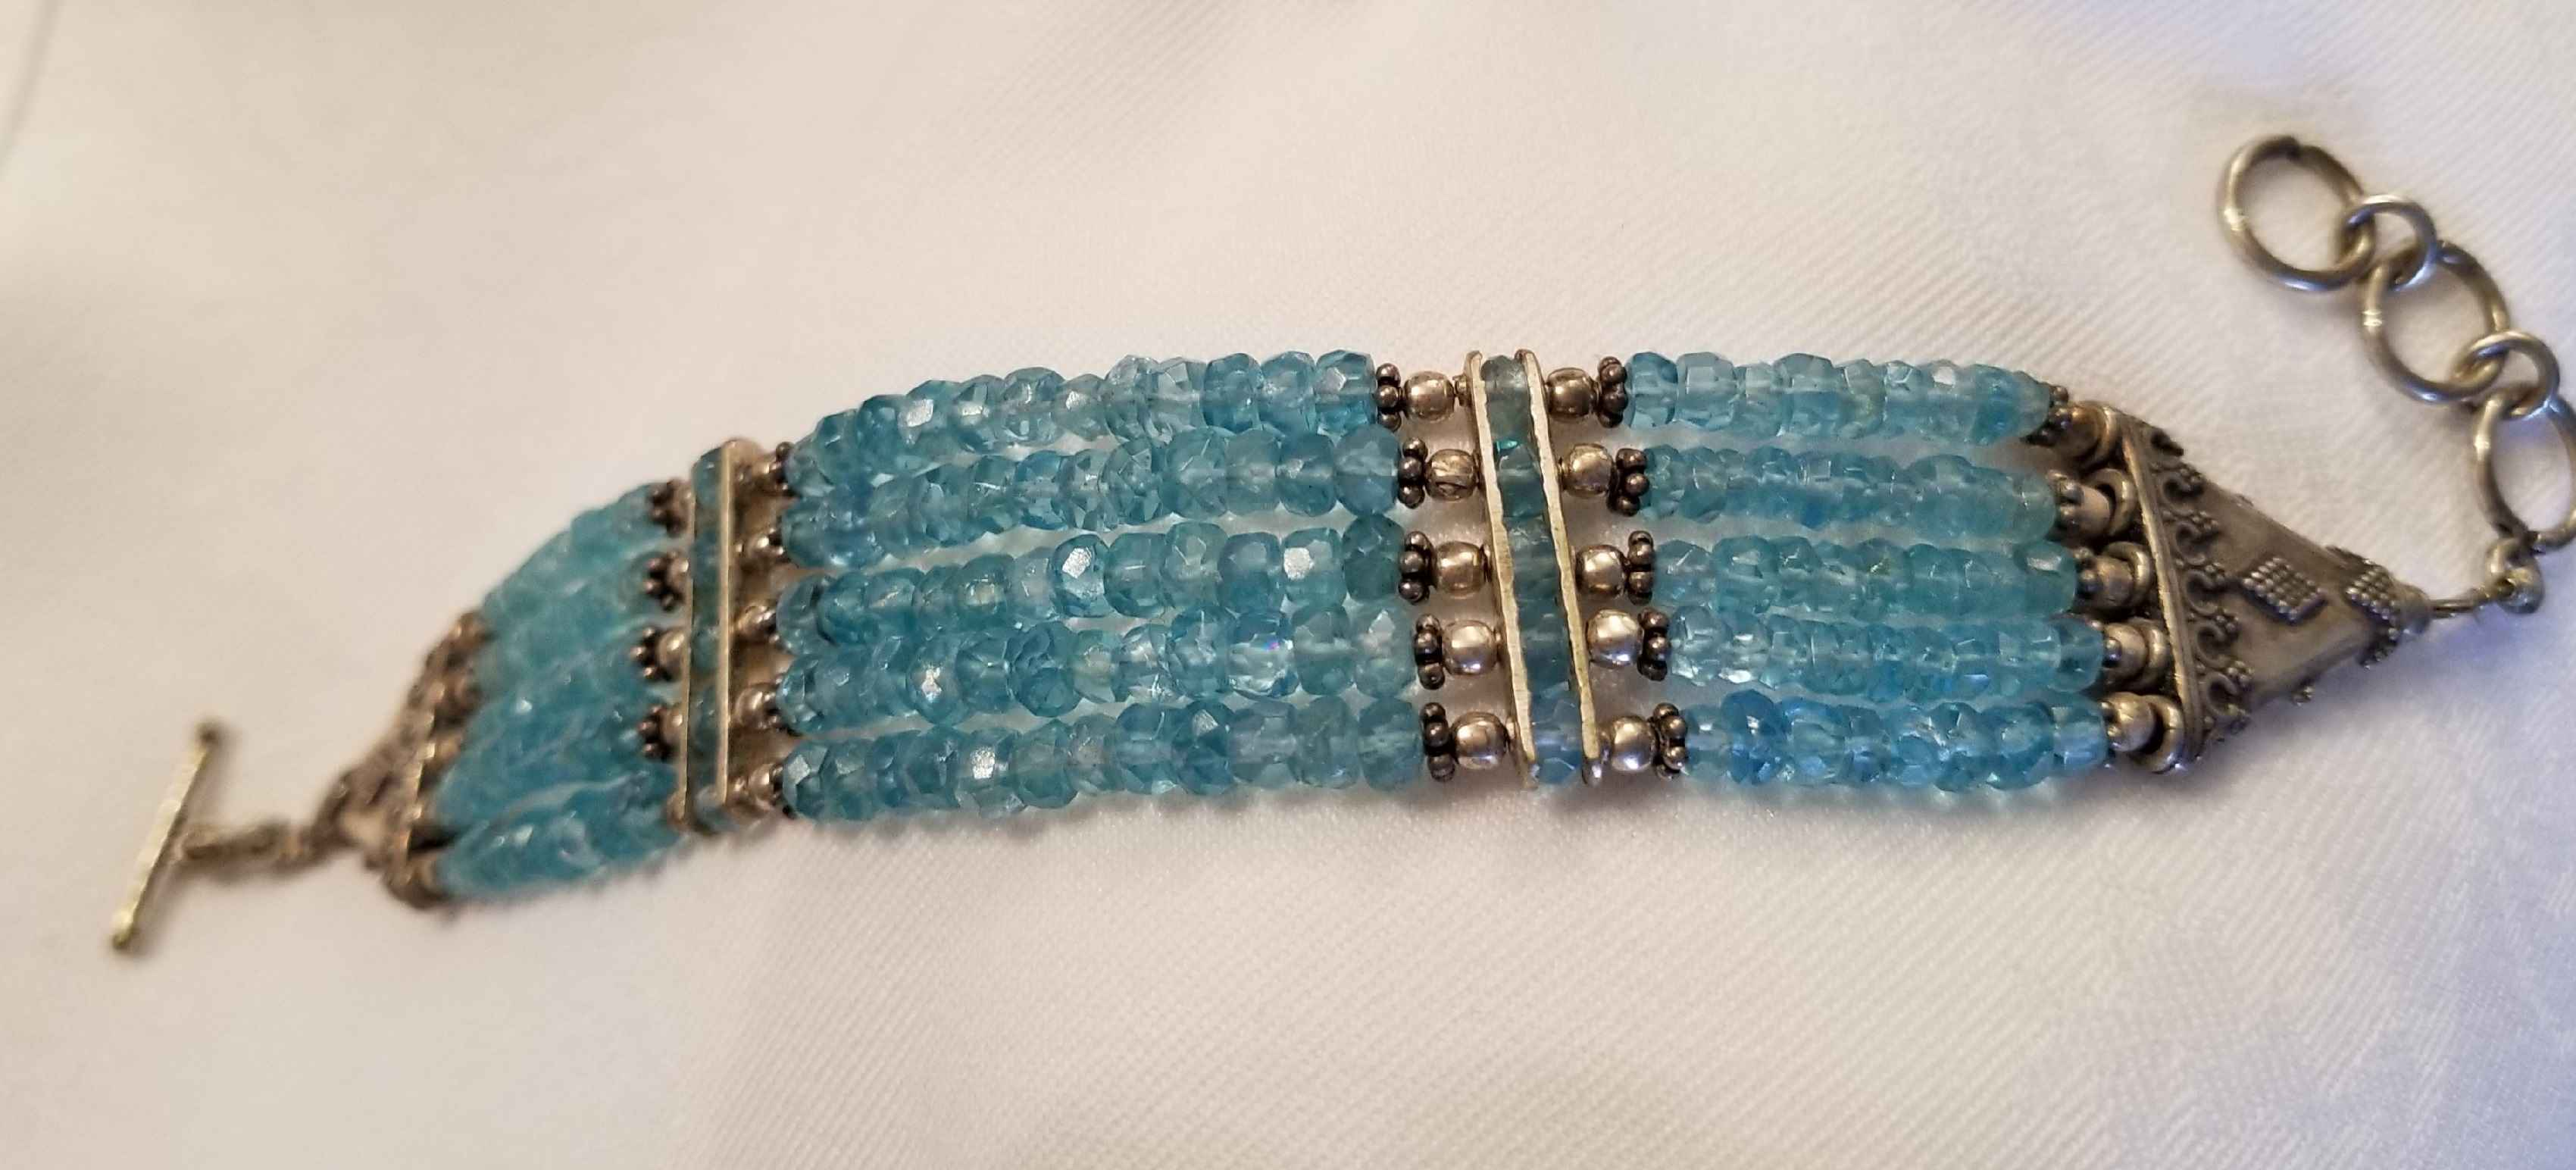 Bracelet - Handcrafte... by  Gallery Pieces - Masterpiece Online